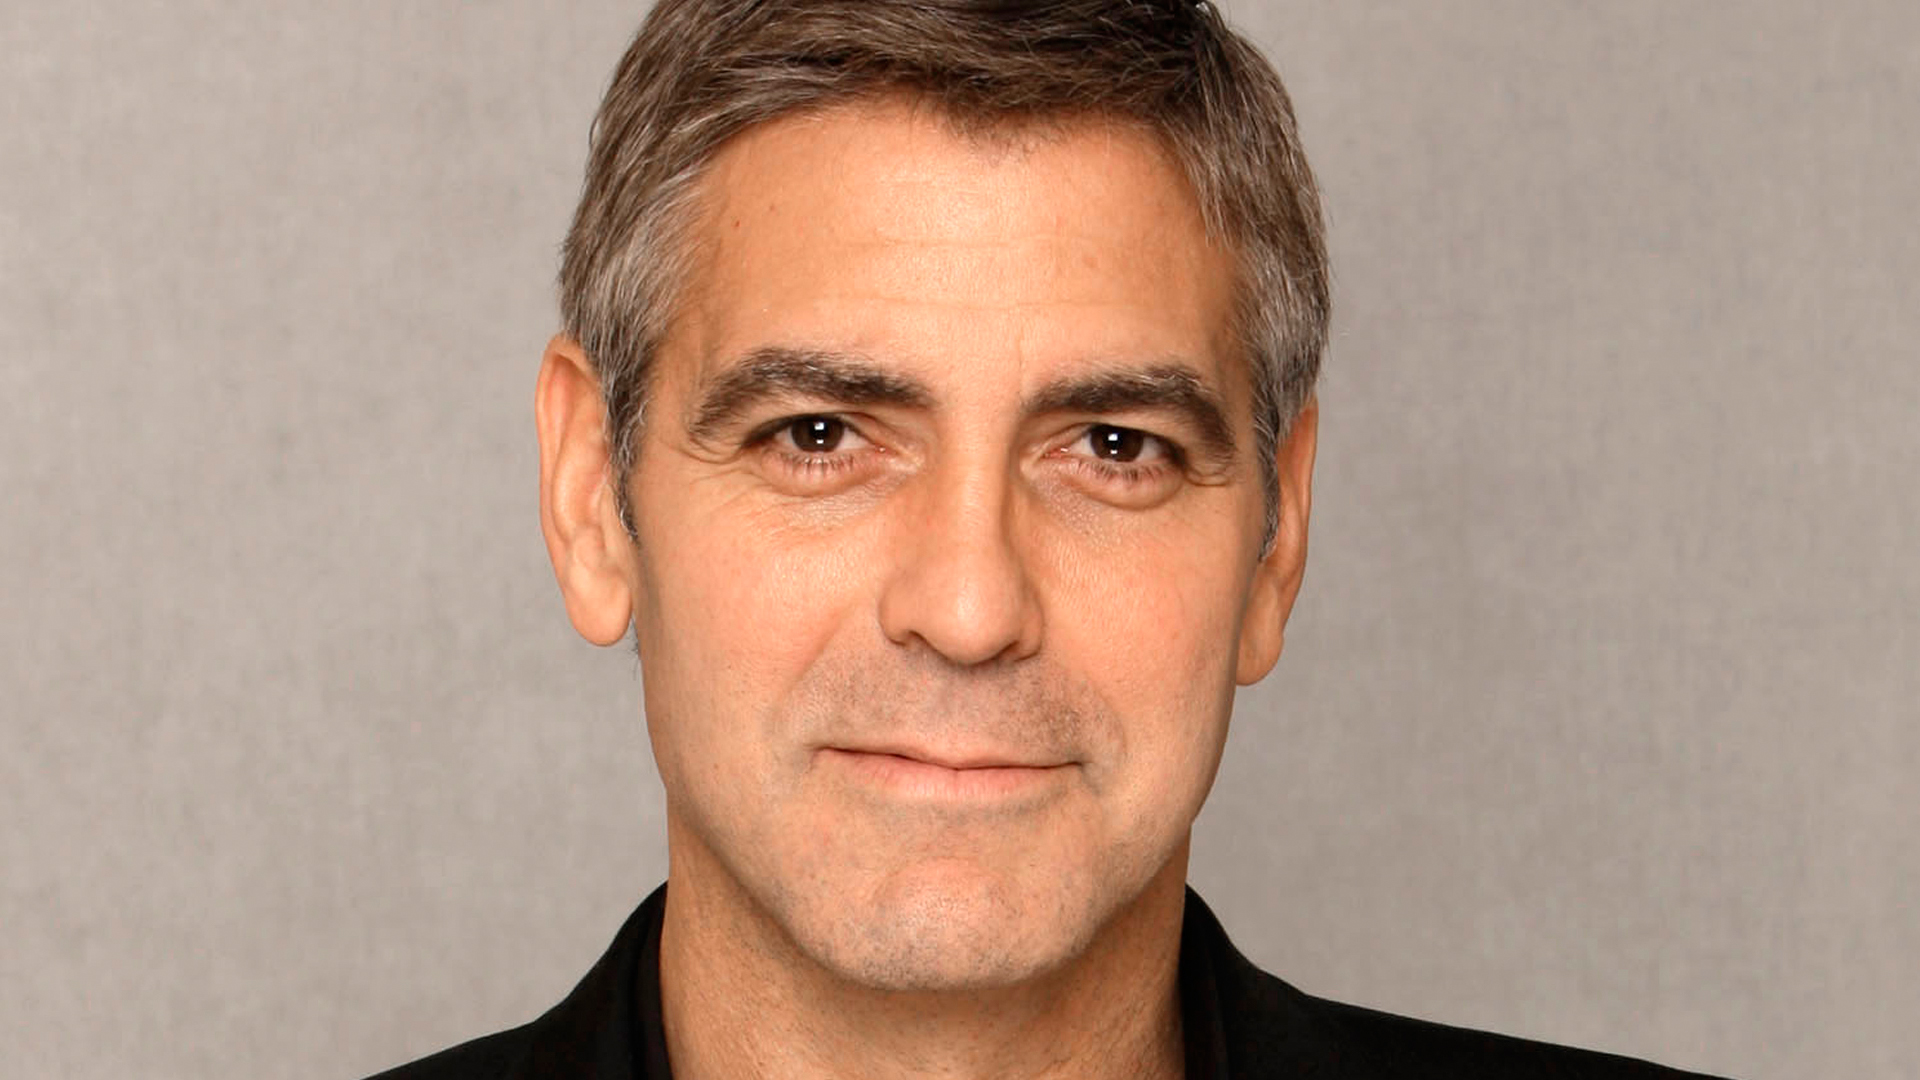 George Clooney earned a  million dollar salary - leaving the net worth at 180 million in 2018